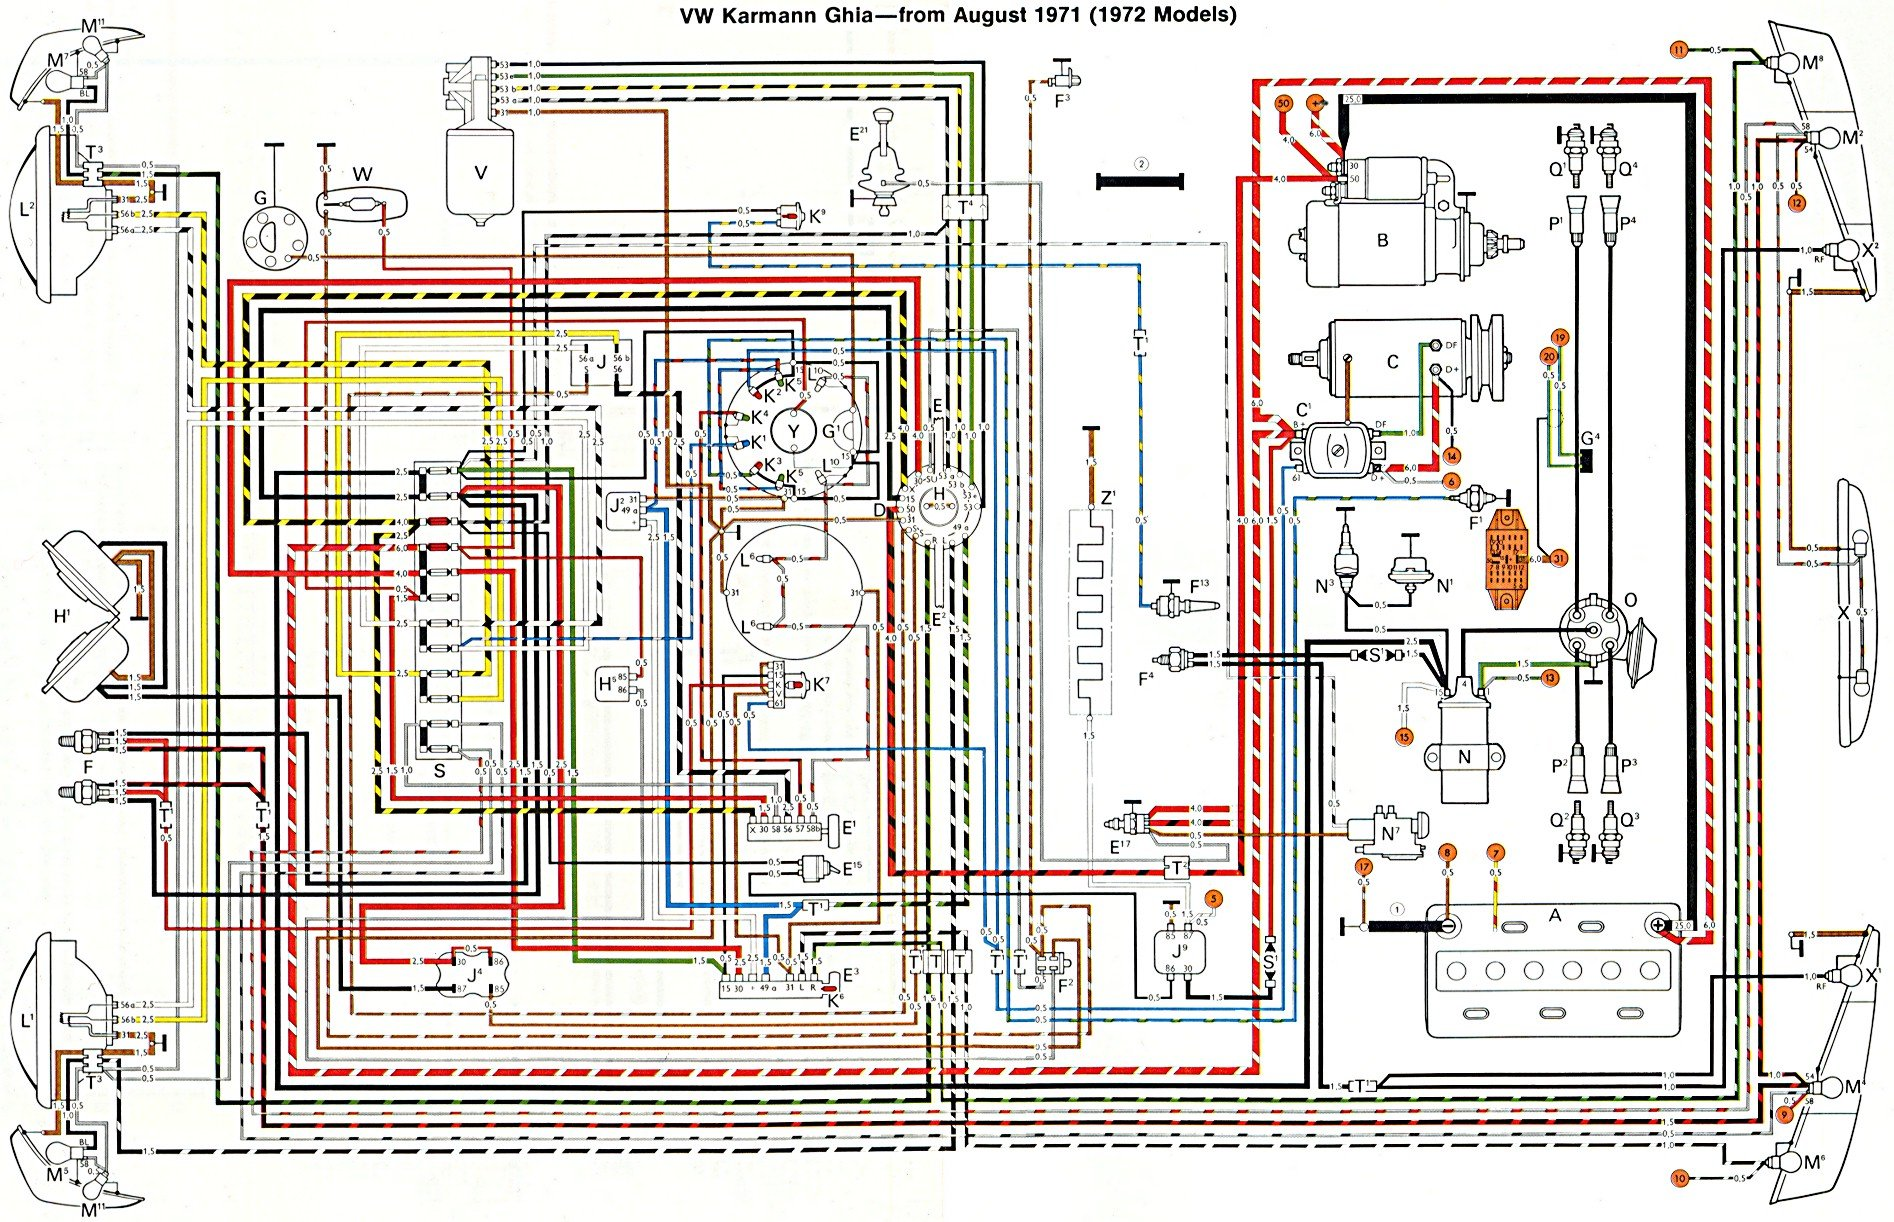 72ghia das volks vintage volkswagen gruppe \u2022 view topic turning signal 1972 beetle wiring diagram at mifinder.co